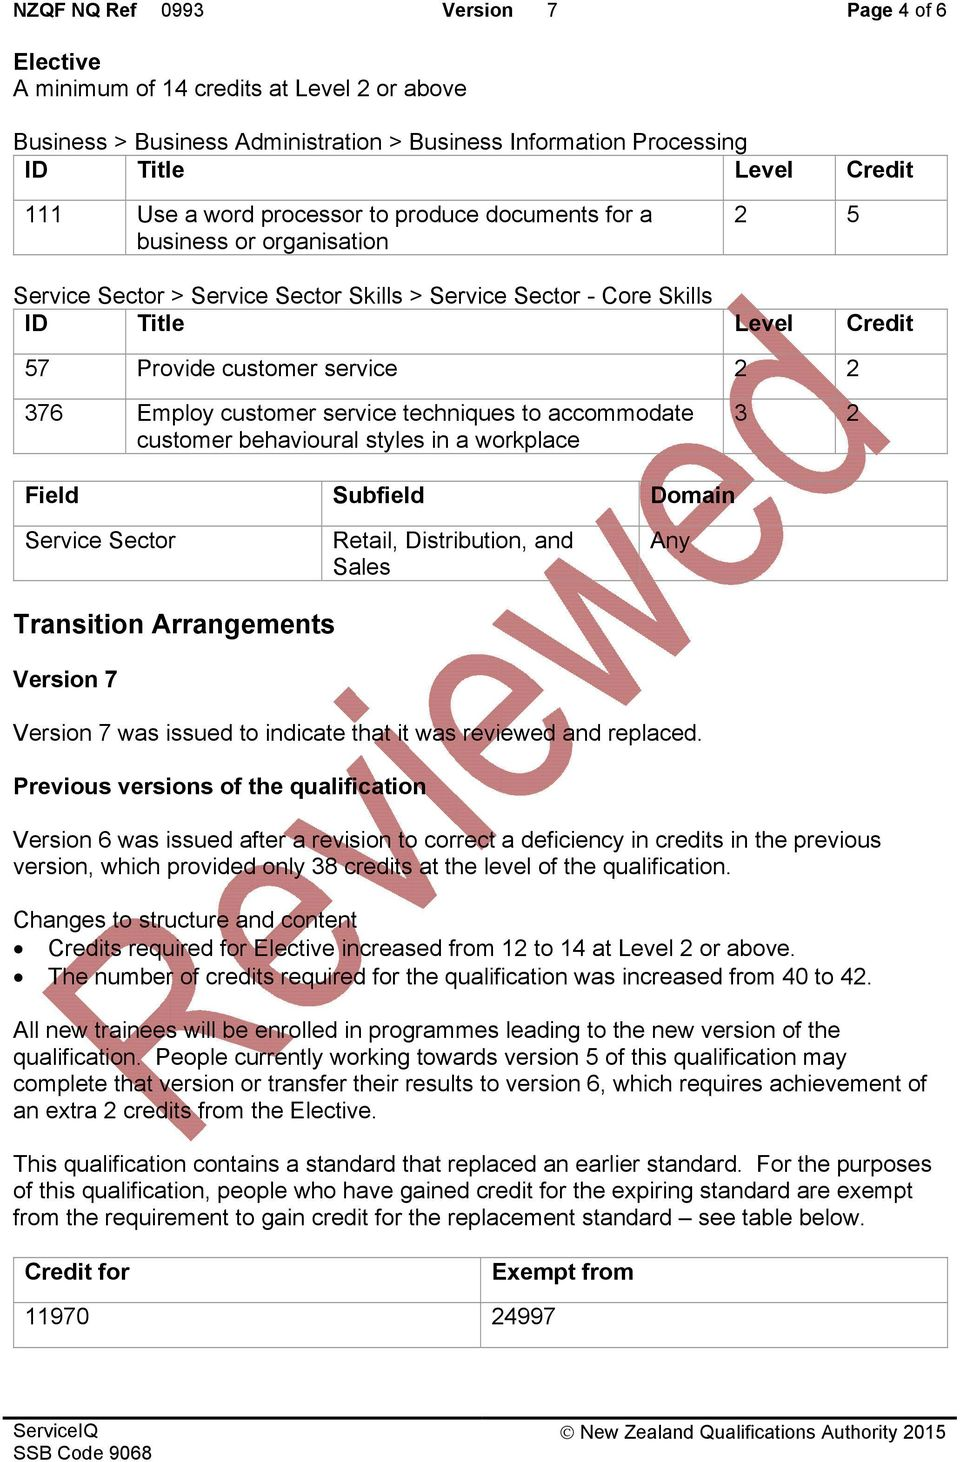 accommodate customer behavioural styles in a workplace 3 2 Field Subfield Domain Service Sector Retail, Distribution, and Any Transition Arrangements Version 7 Version 7 was issued to indicate that